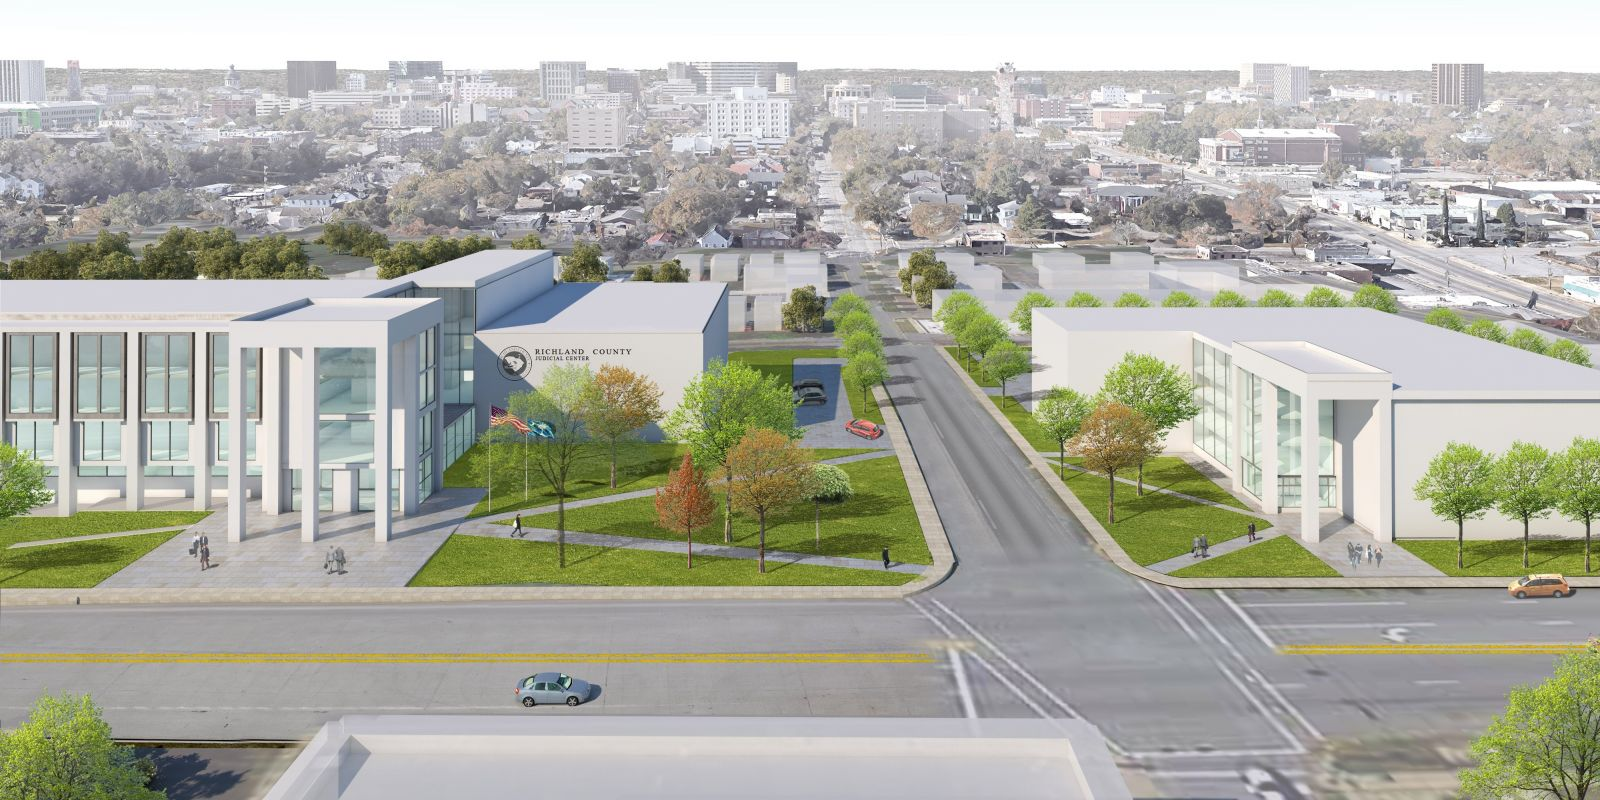 A rendering of the proposed downtown courthouse and judicial complex at 2020 Hampton St., part of the Richland Renaissance project. Richland County Council voted to indefinitely defer the project on Thursday. (Photo/Provided)